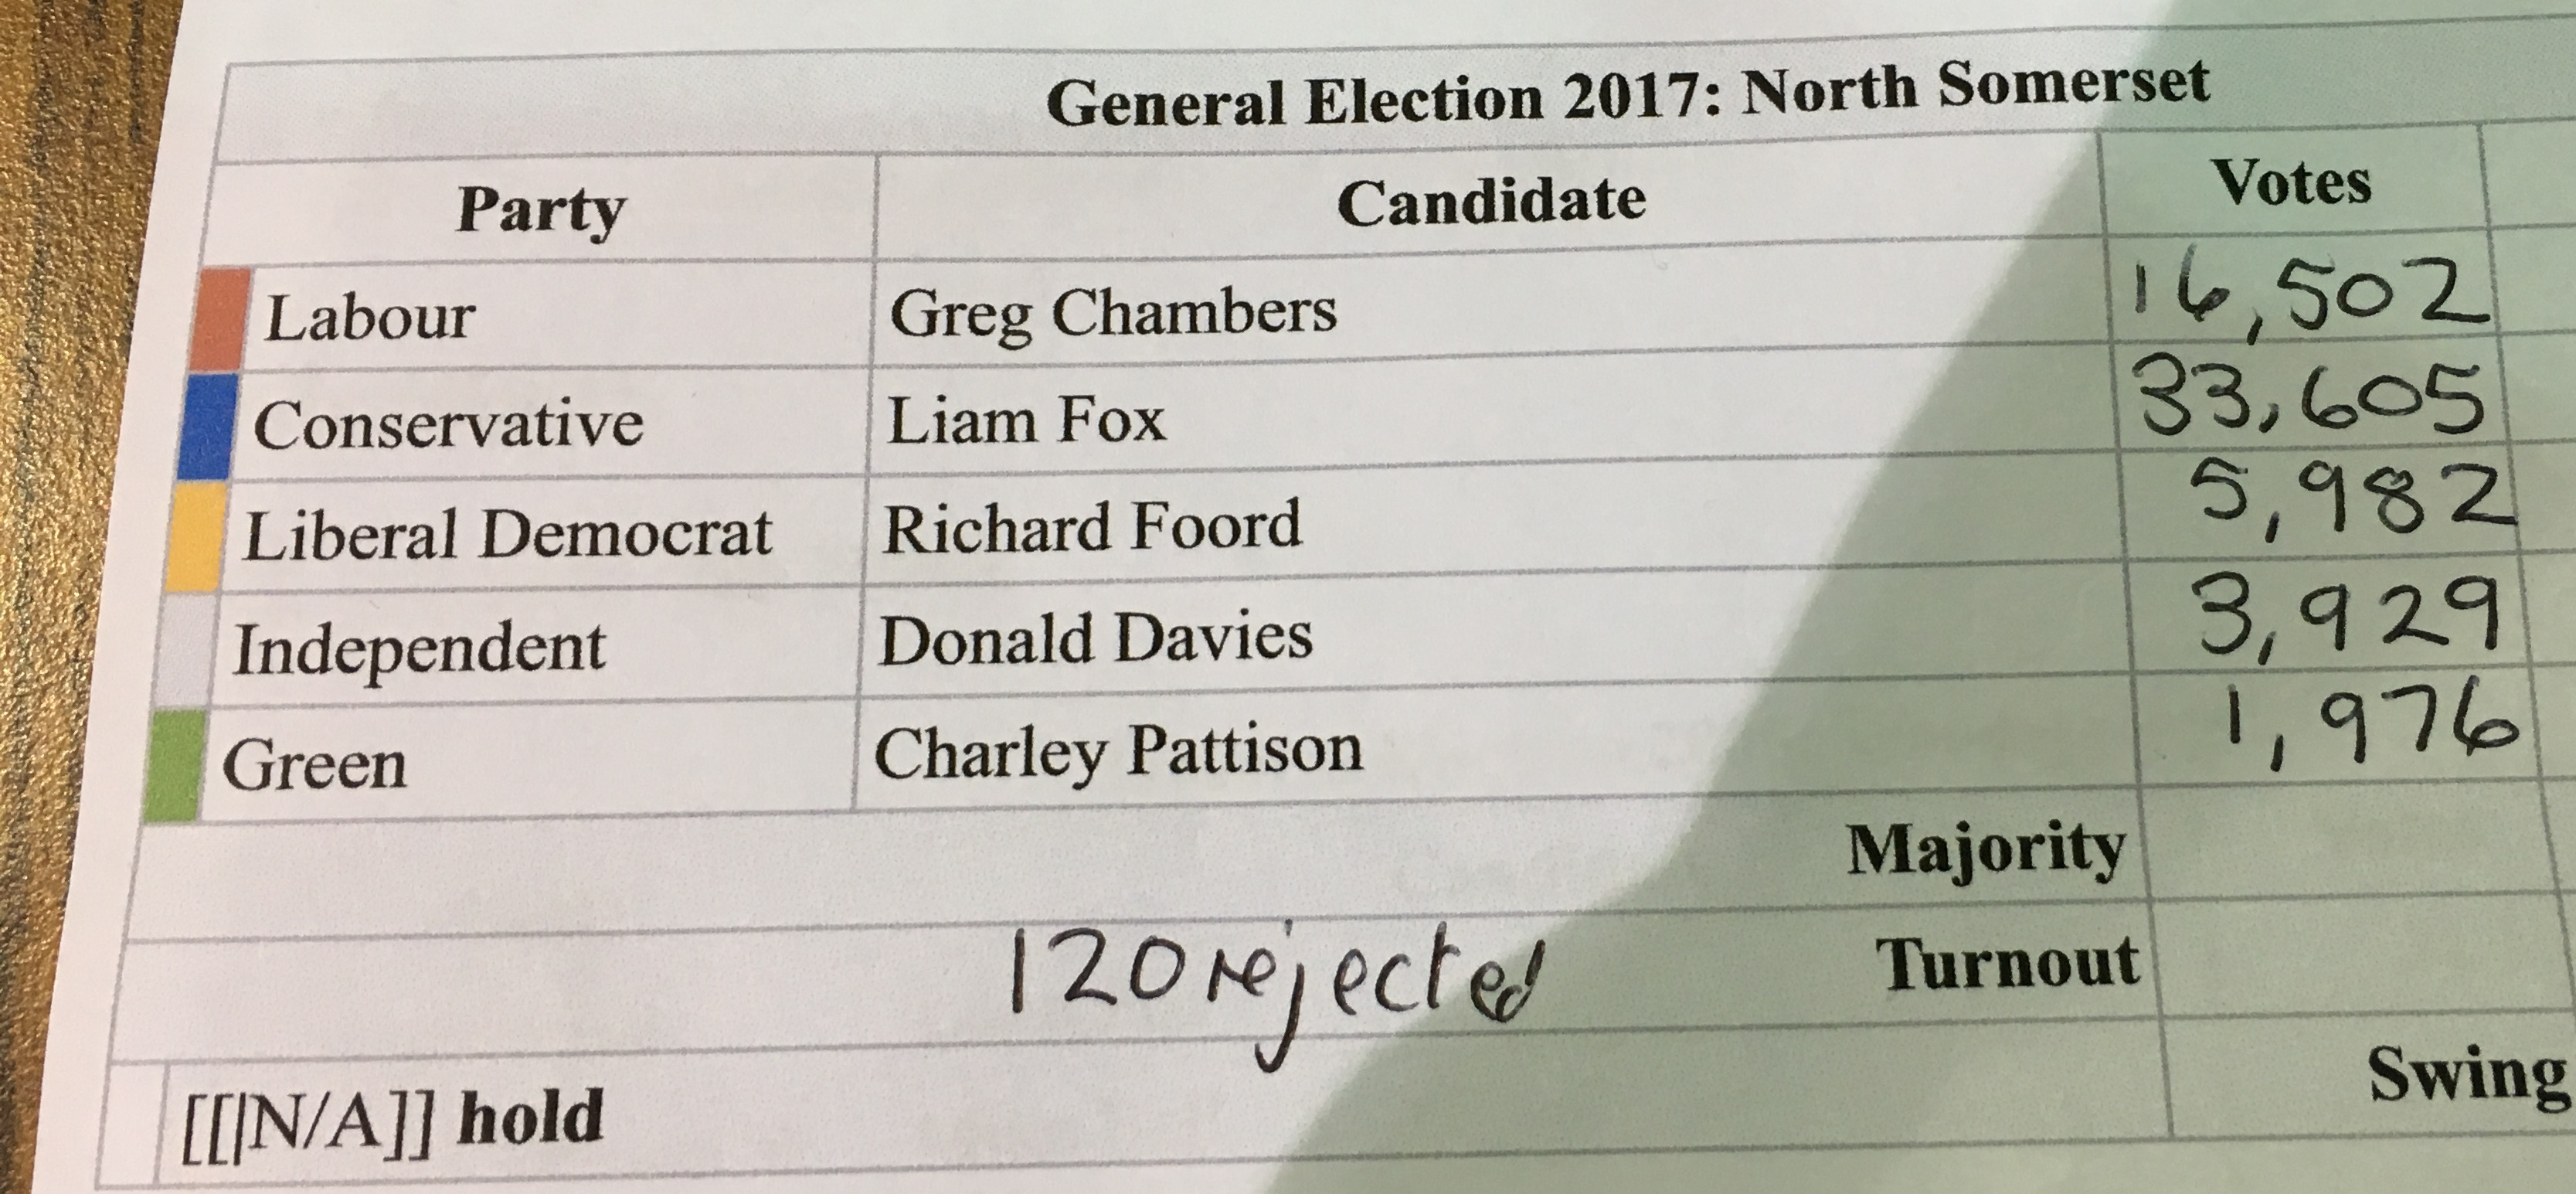 #GE 2017 North Somerset